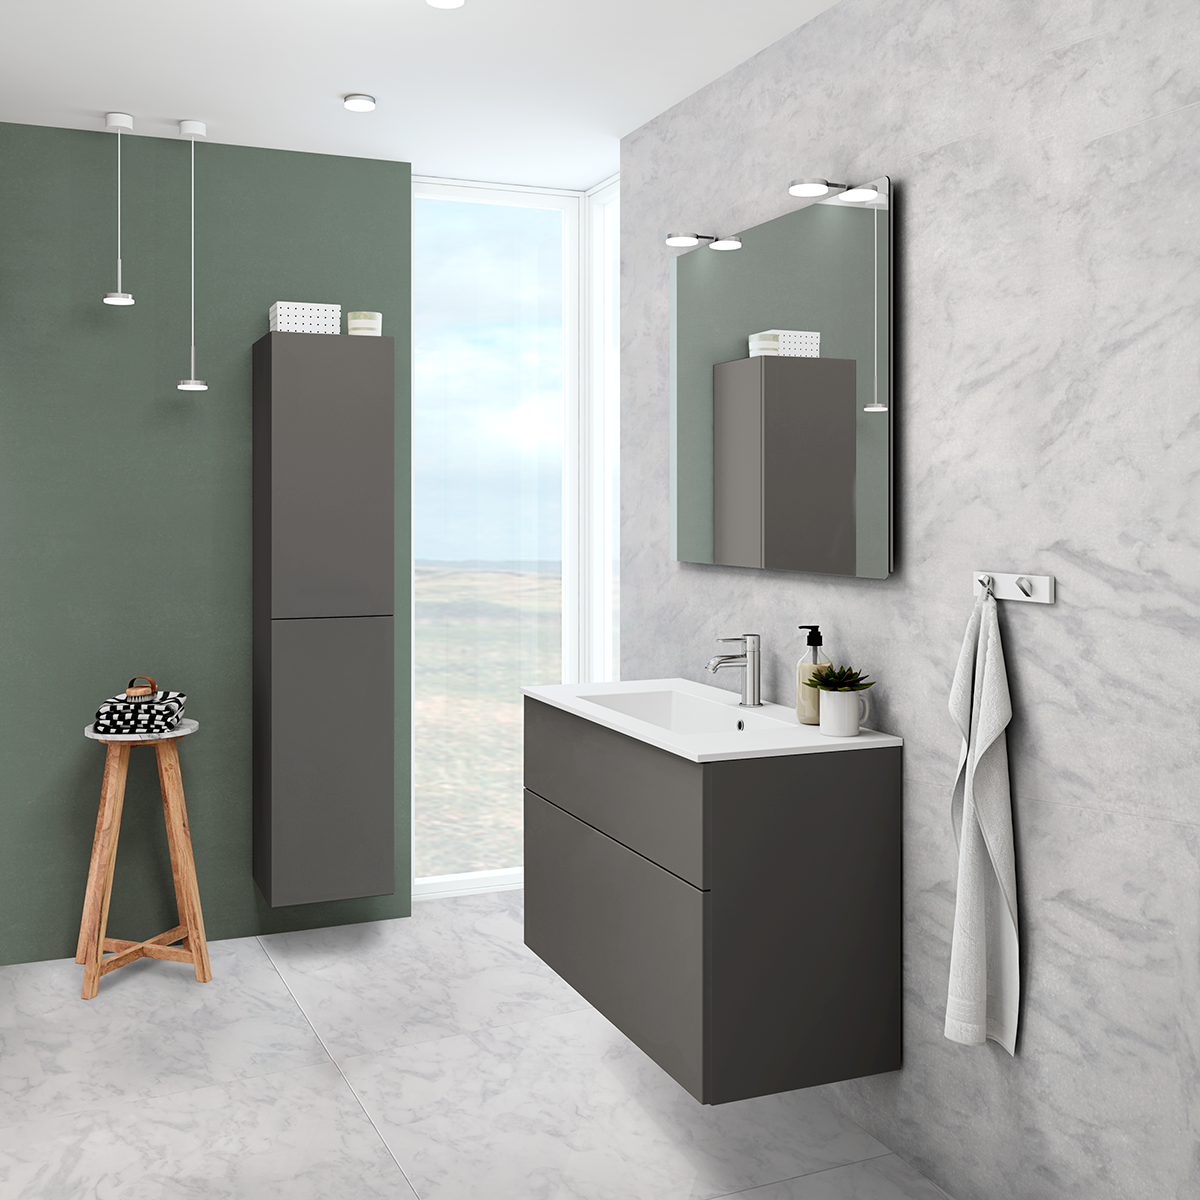 The New Grey Matt Gives A Feel Of Elegance And Luxury To Your Bathroom Modular Furniture System Traditional Bathroom Modular Furniture